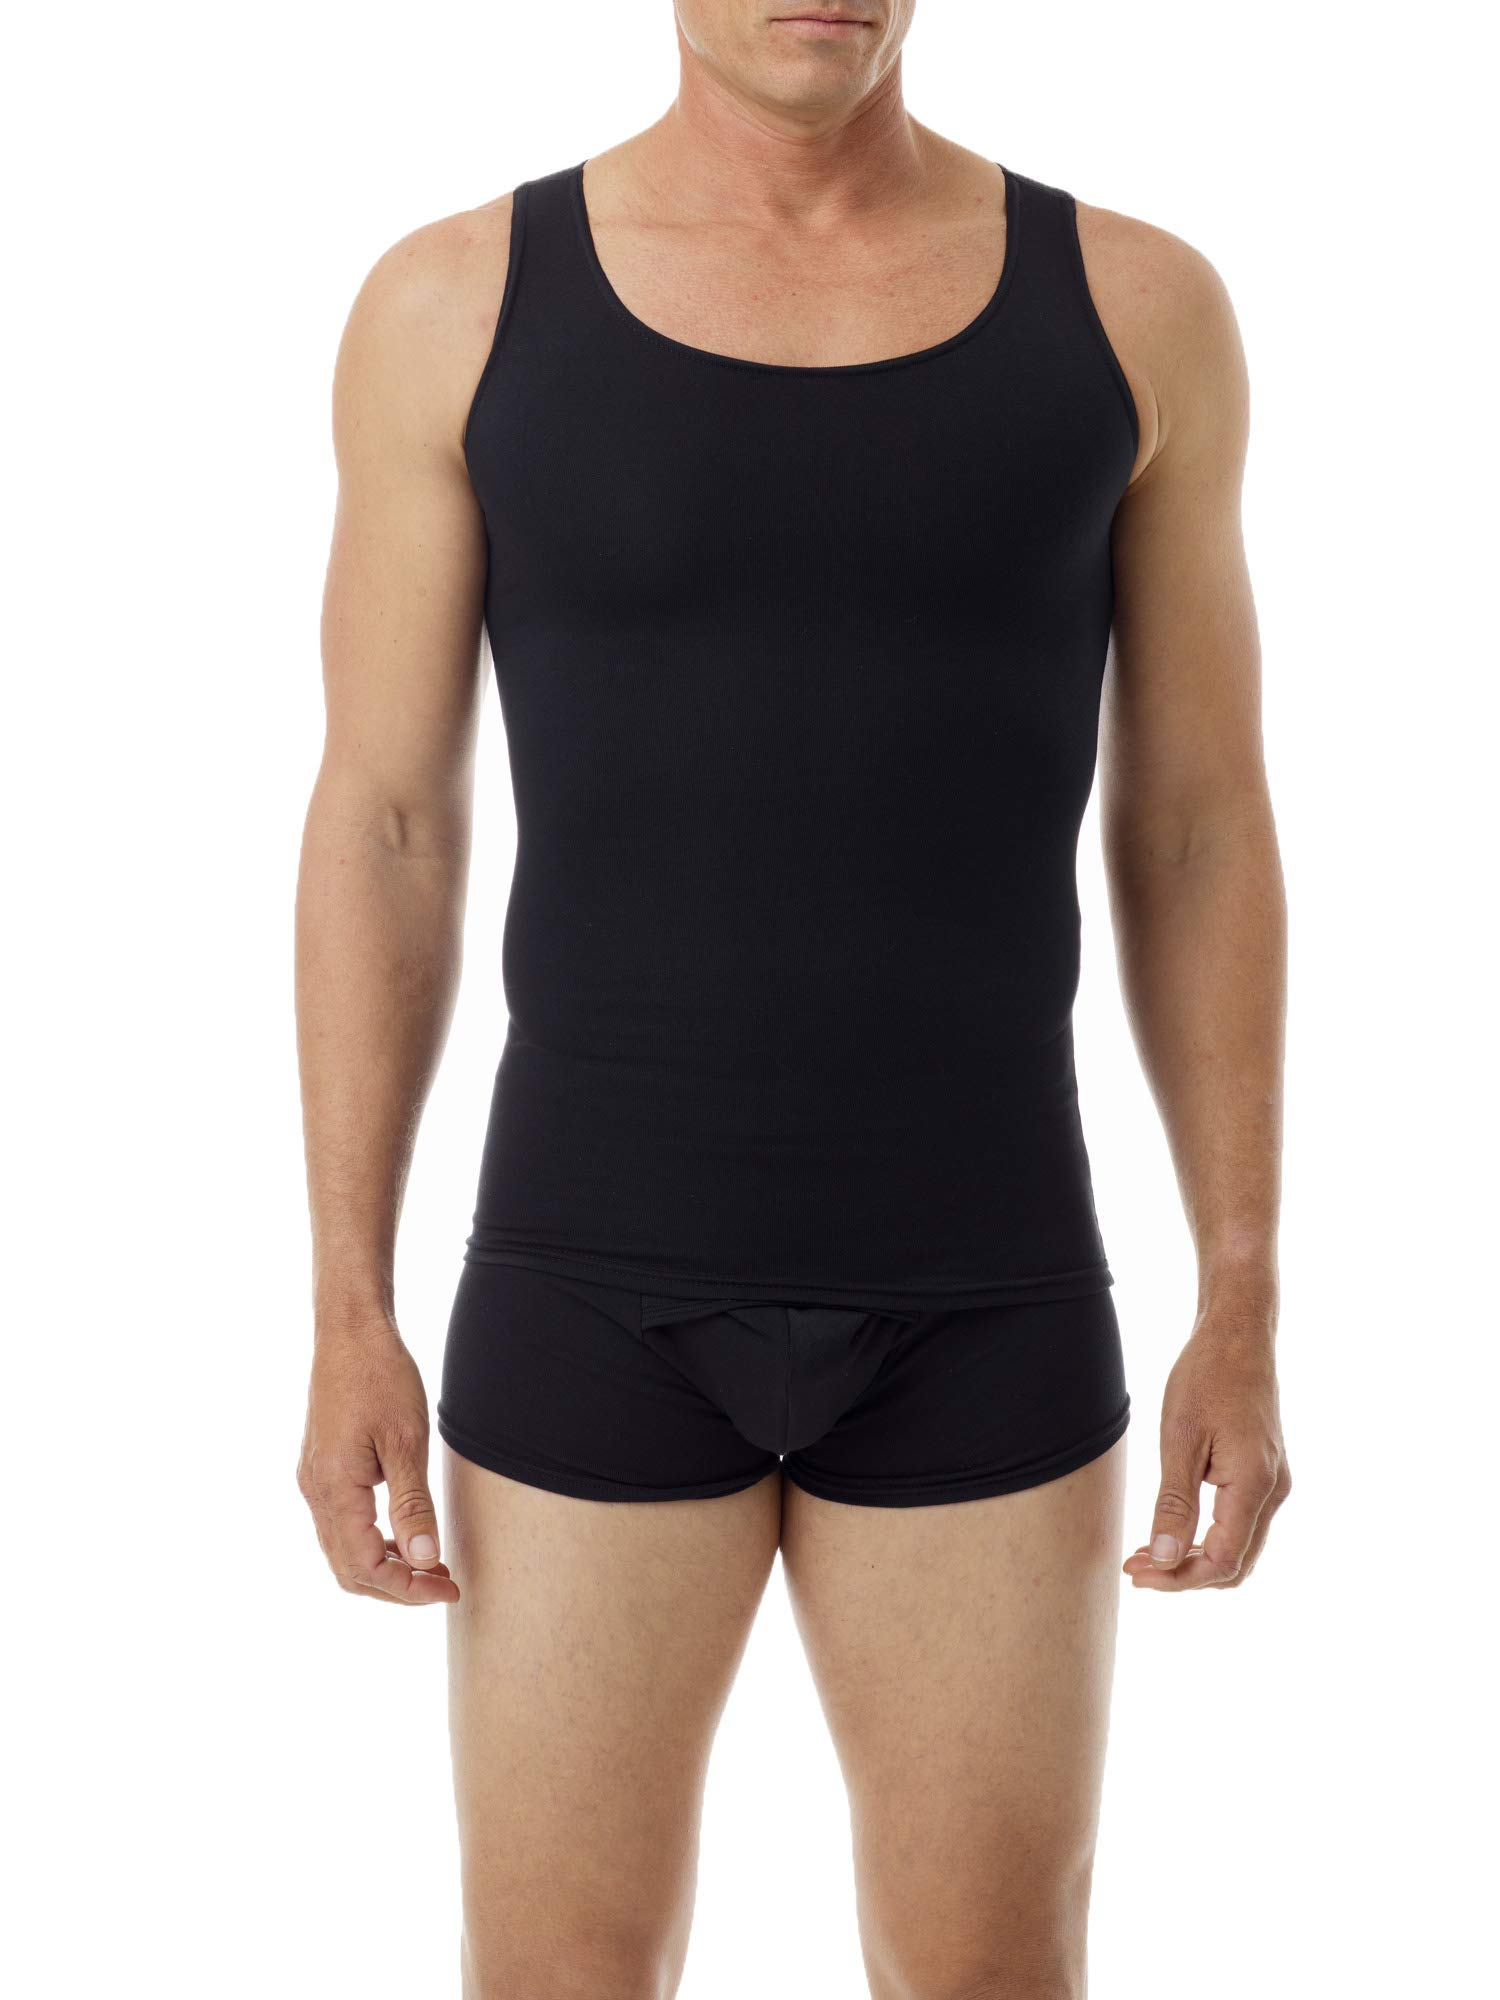 Underworks Mens Cotton Spandex Compression Tank 3-Pack, Small, Black by Underworks (Image #1)